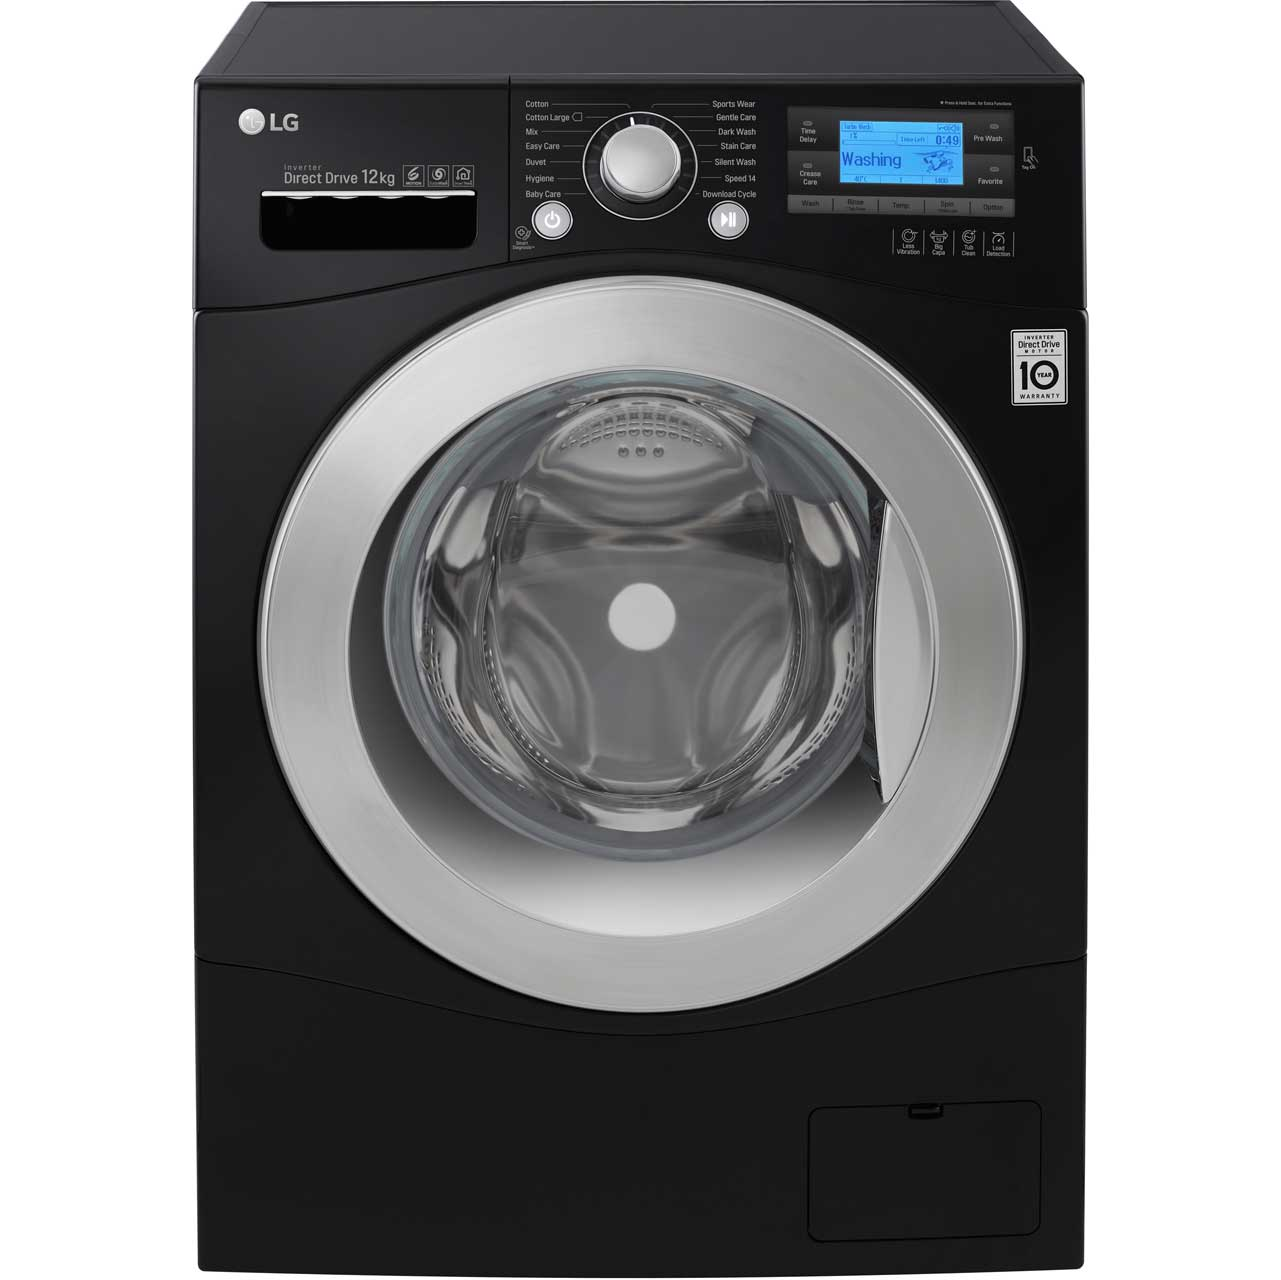 LG FH495BDN8 Free Standing Washing Machine in Black